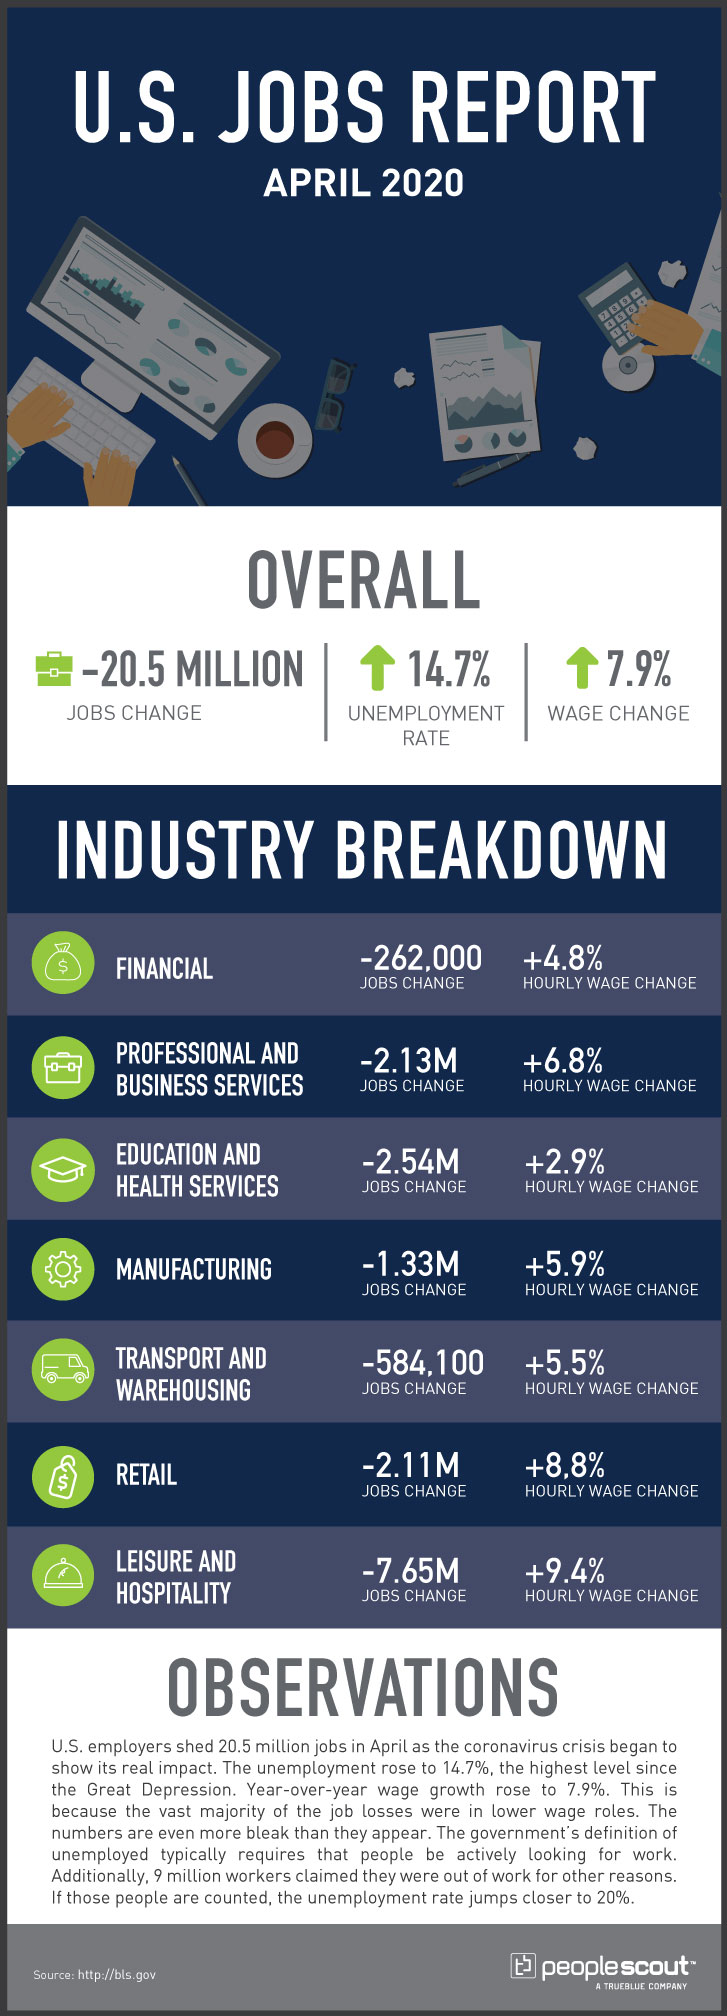 U.S. April Jobs Report 2020 infographic